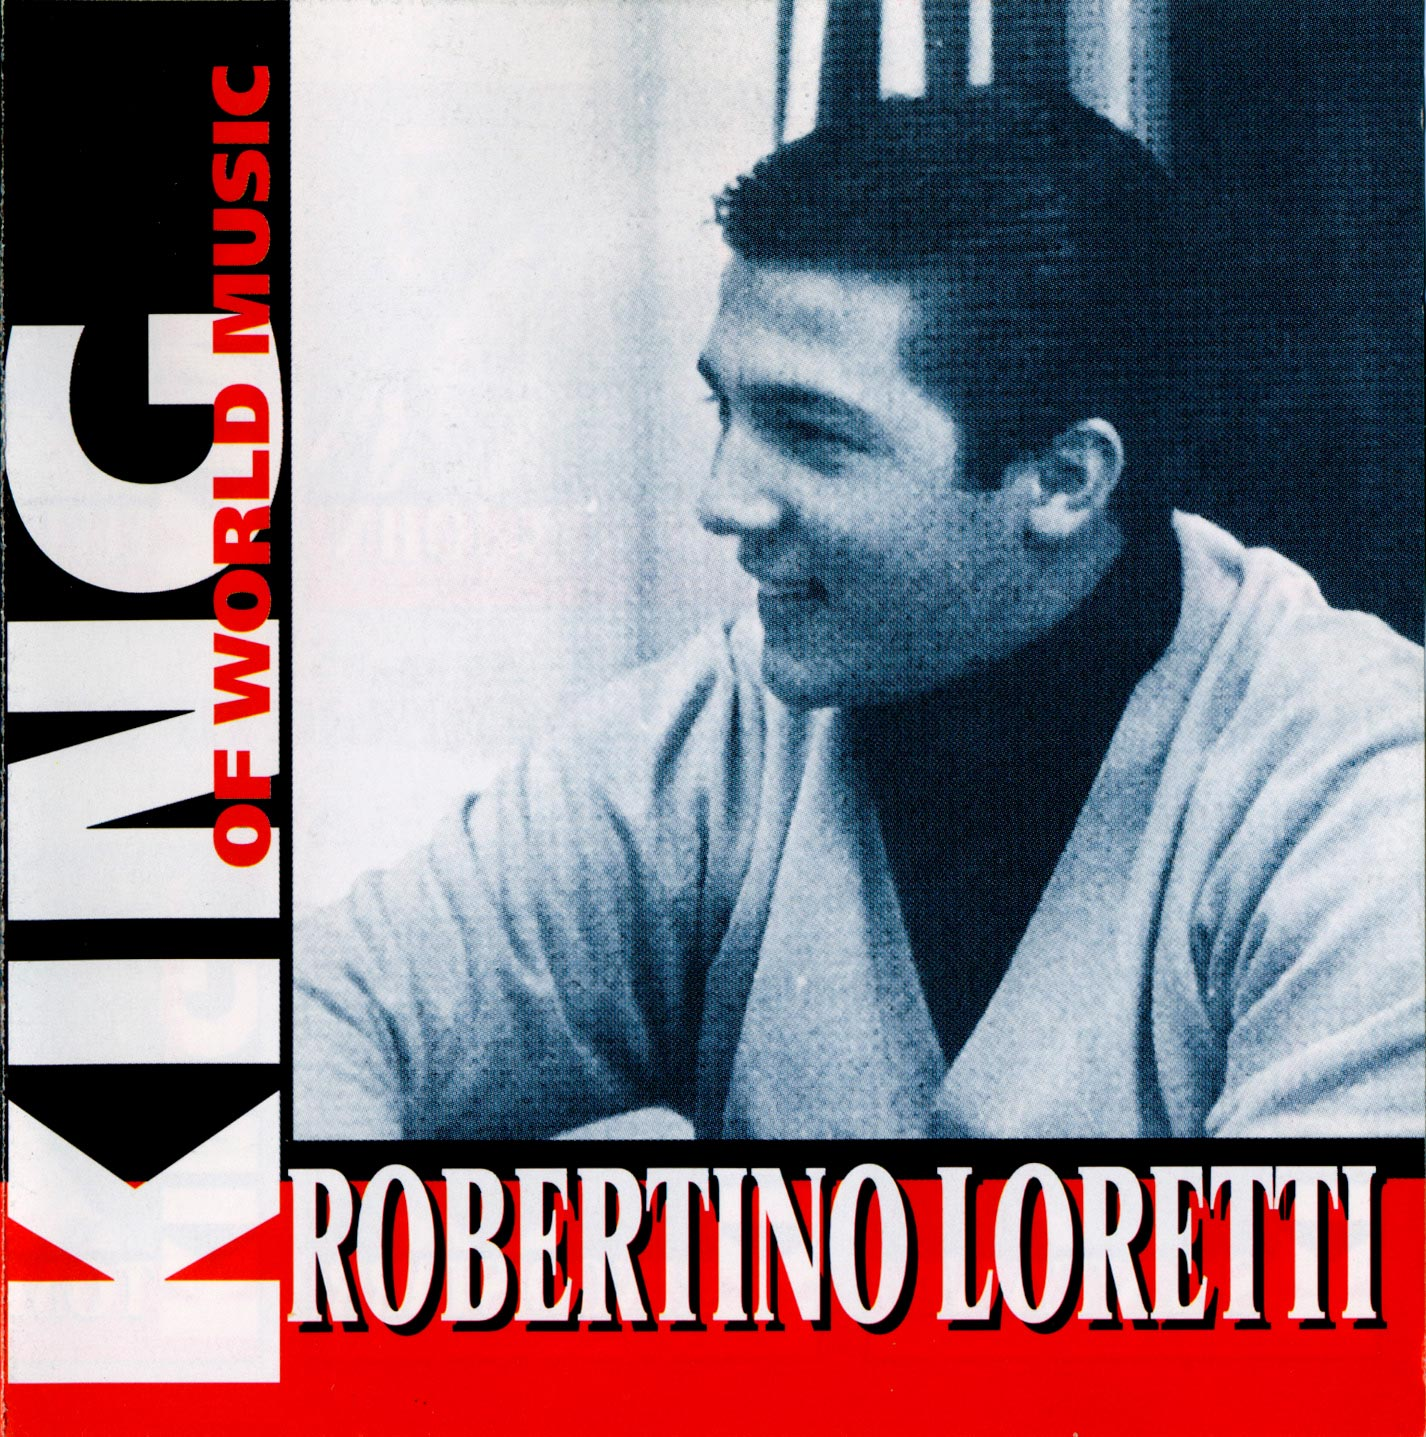 robertino loreti songs mp 3 download or скачать: